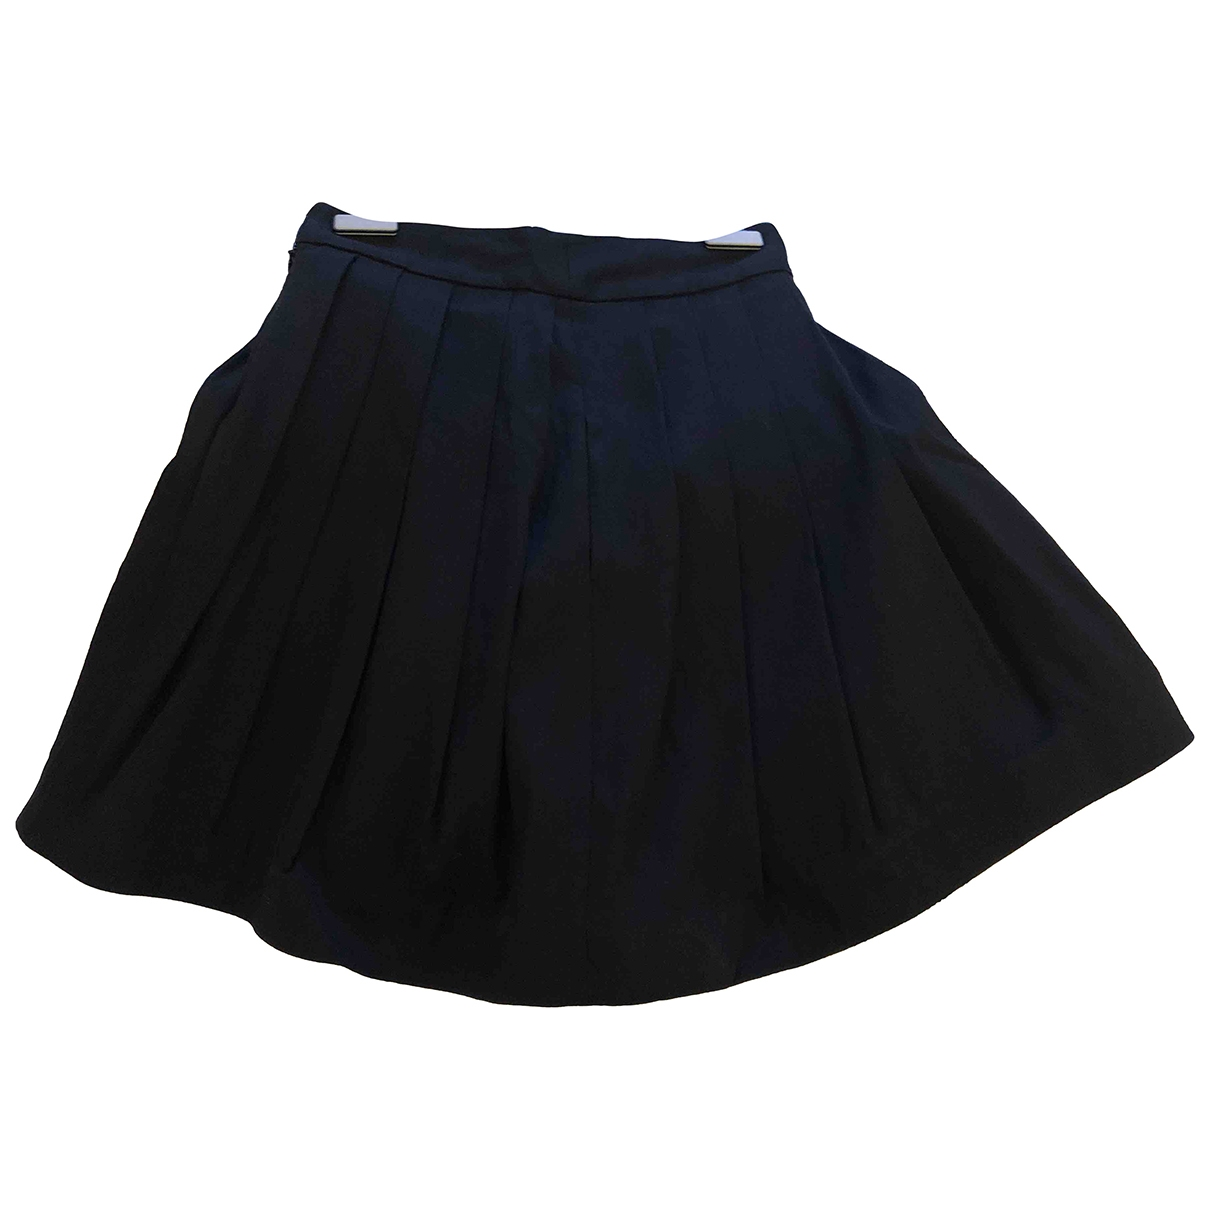 Halston Heritage \N Black Cotton skirt for Women 2 US